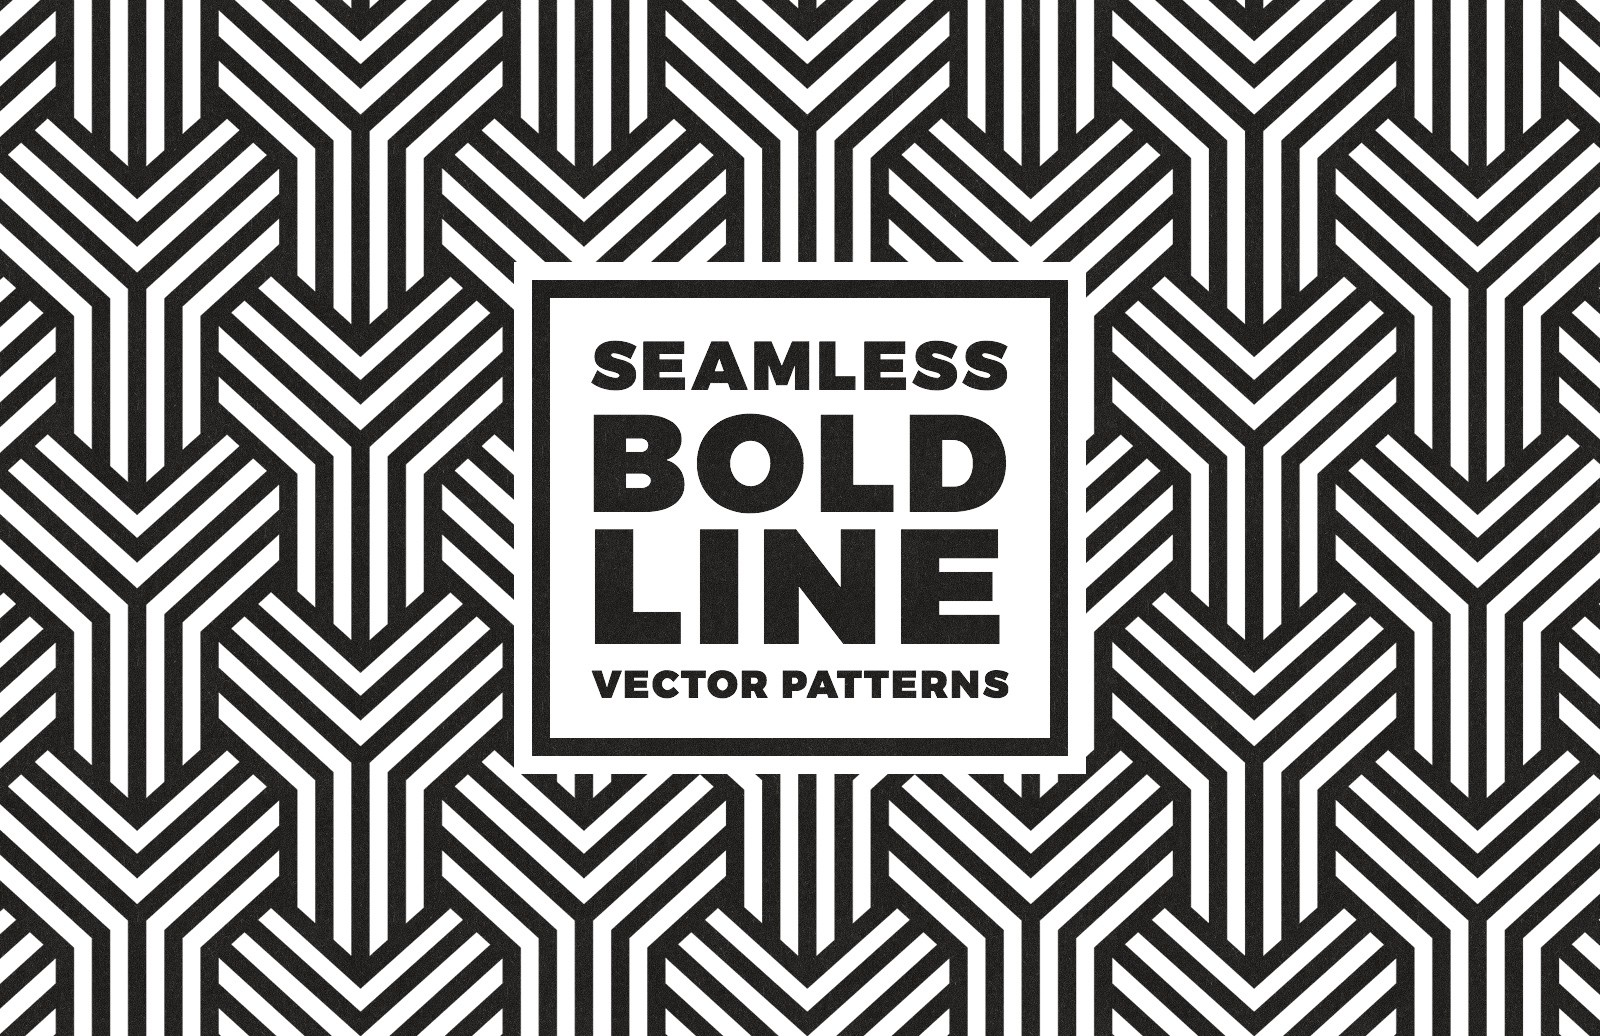 Seamless Bold Line Vector Patterns